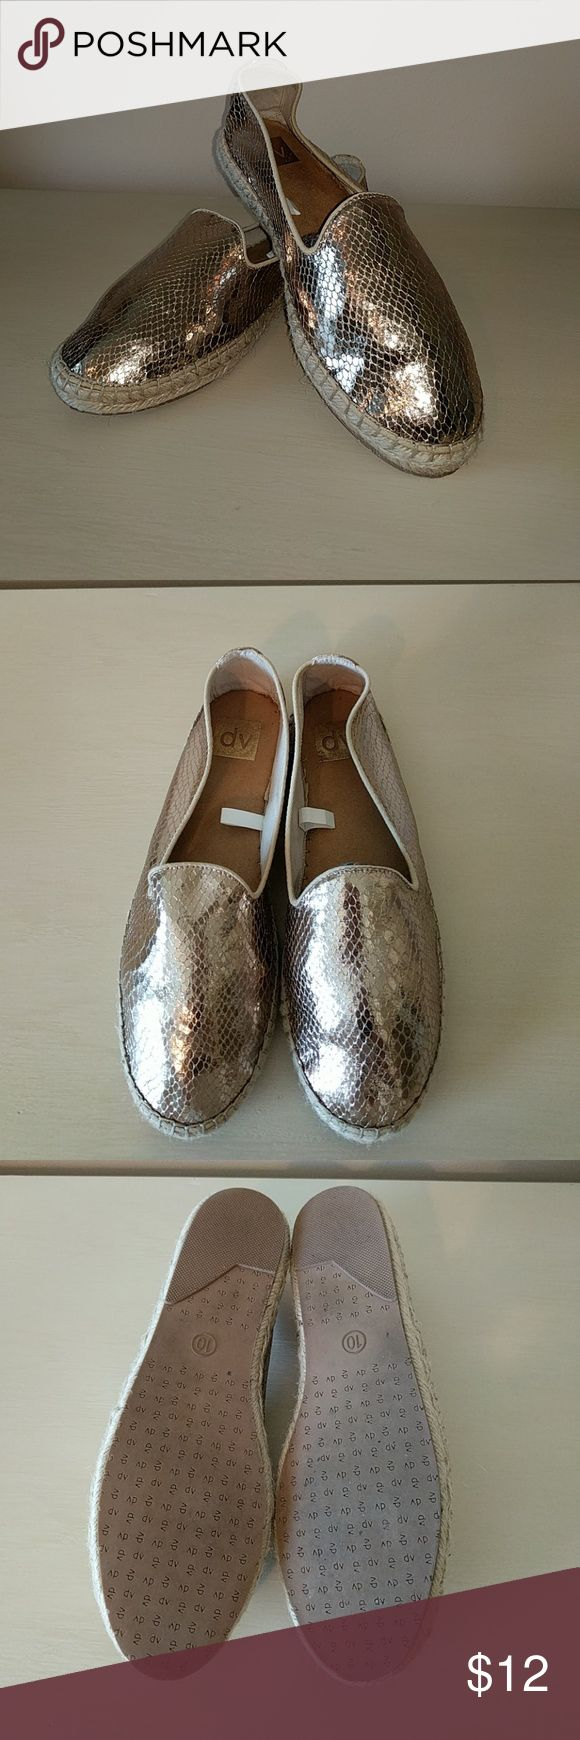 Gold Espadrille Slip-ons Like new condition!  Very trendy slip-on gold espadrille shoes. Tag says size 10, but runs small- would best fit a size 9 or 9.5. DV by Dolce Vita Shoes Espadrilles